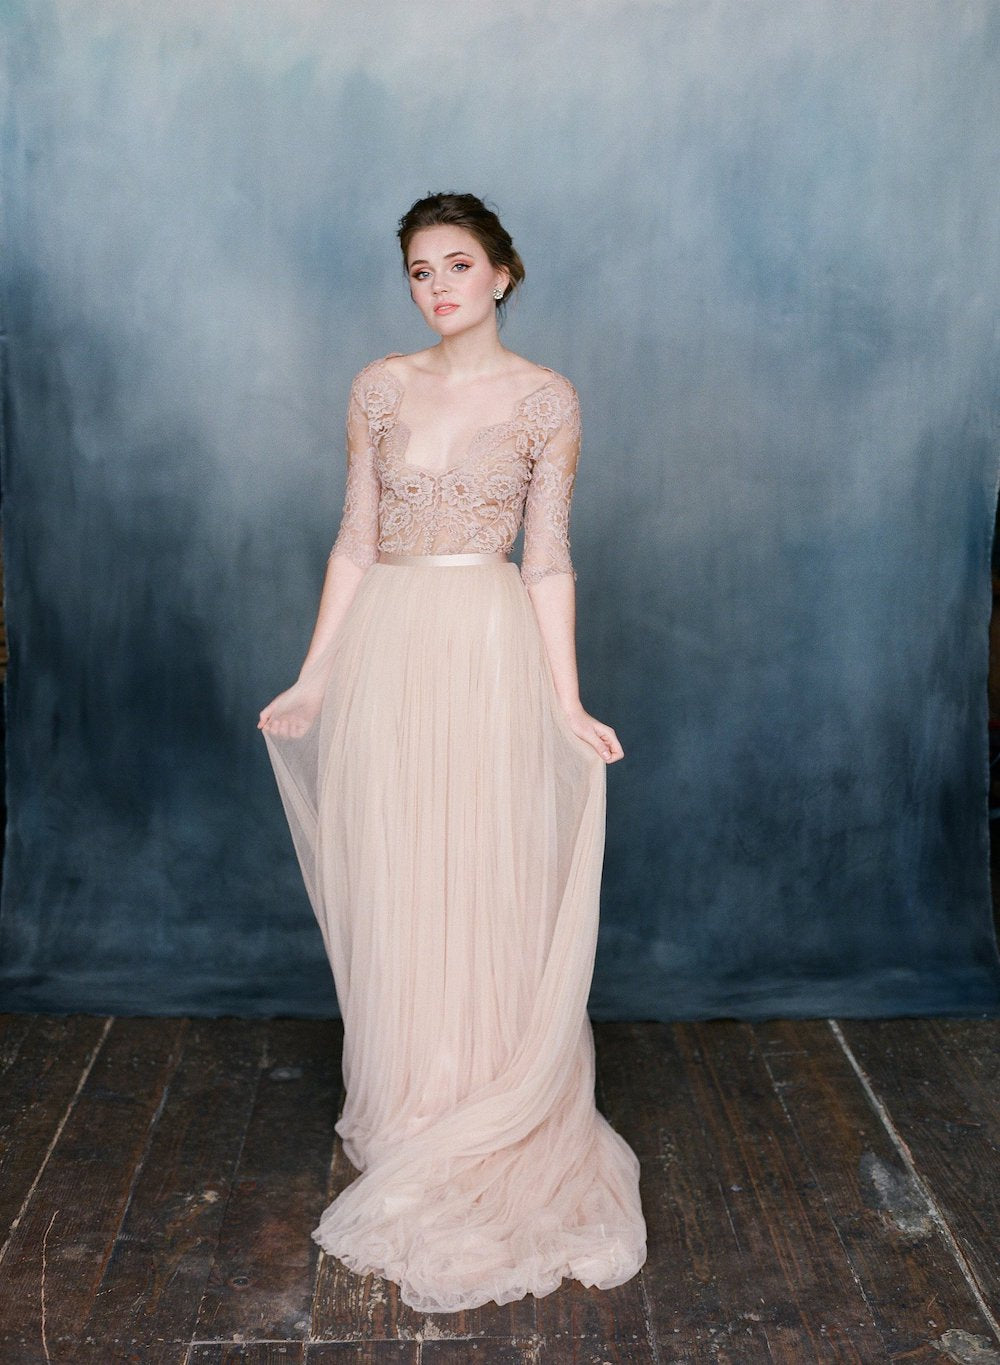 women wearing a pink silk tulle skirt with pink lace top with sleeves and v-neckline